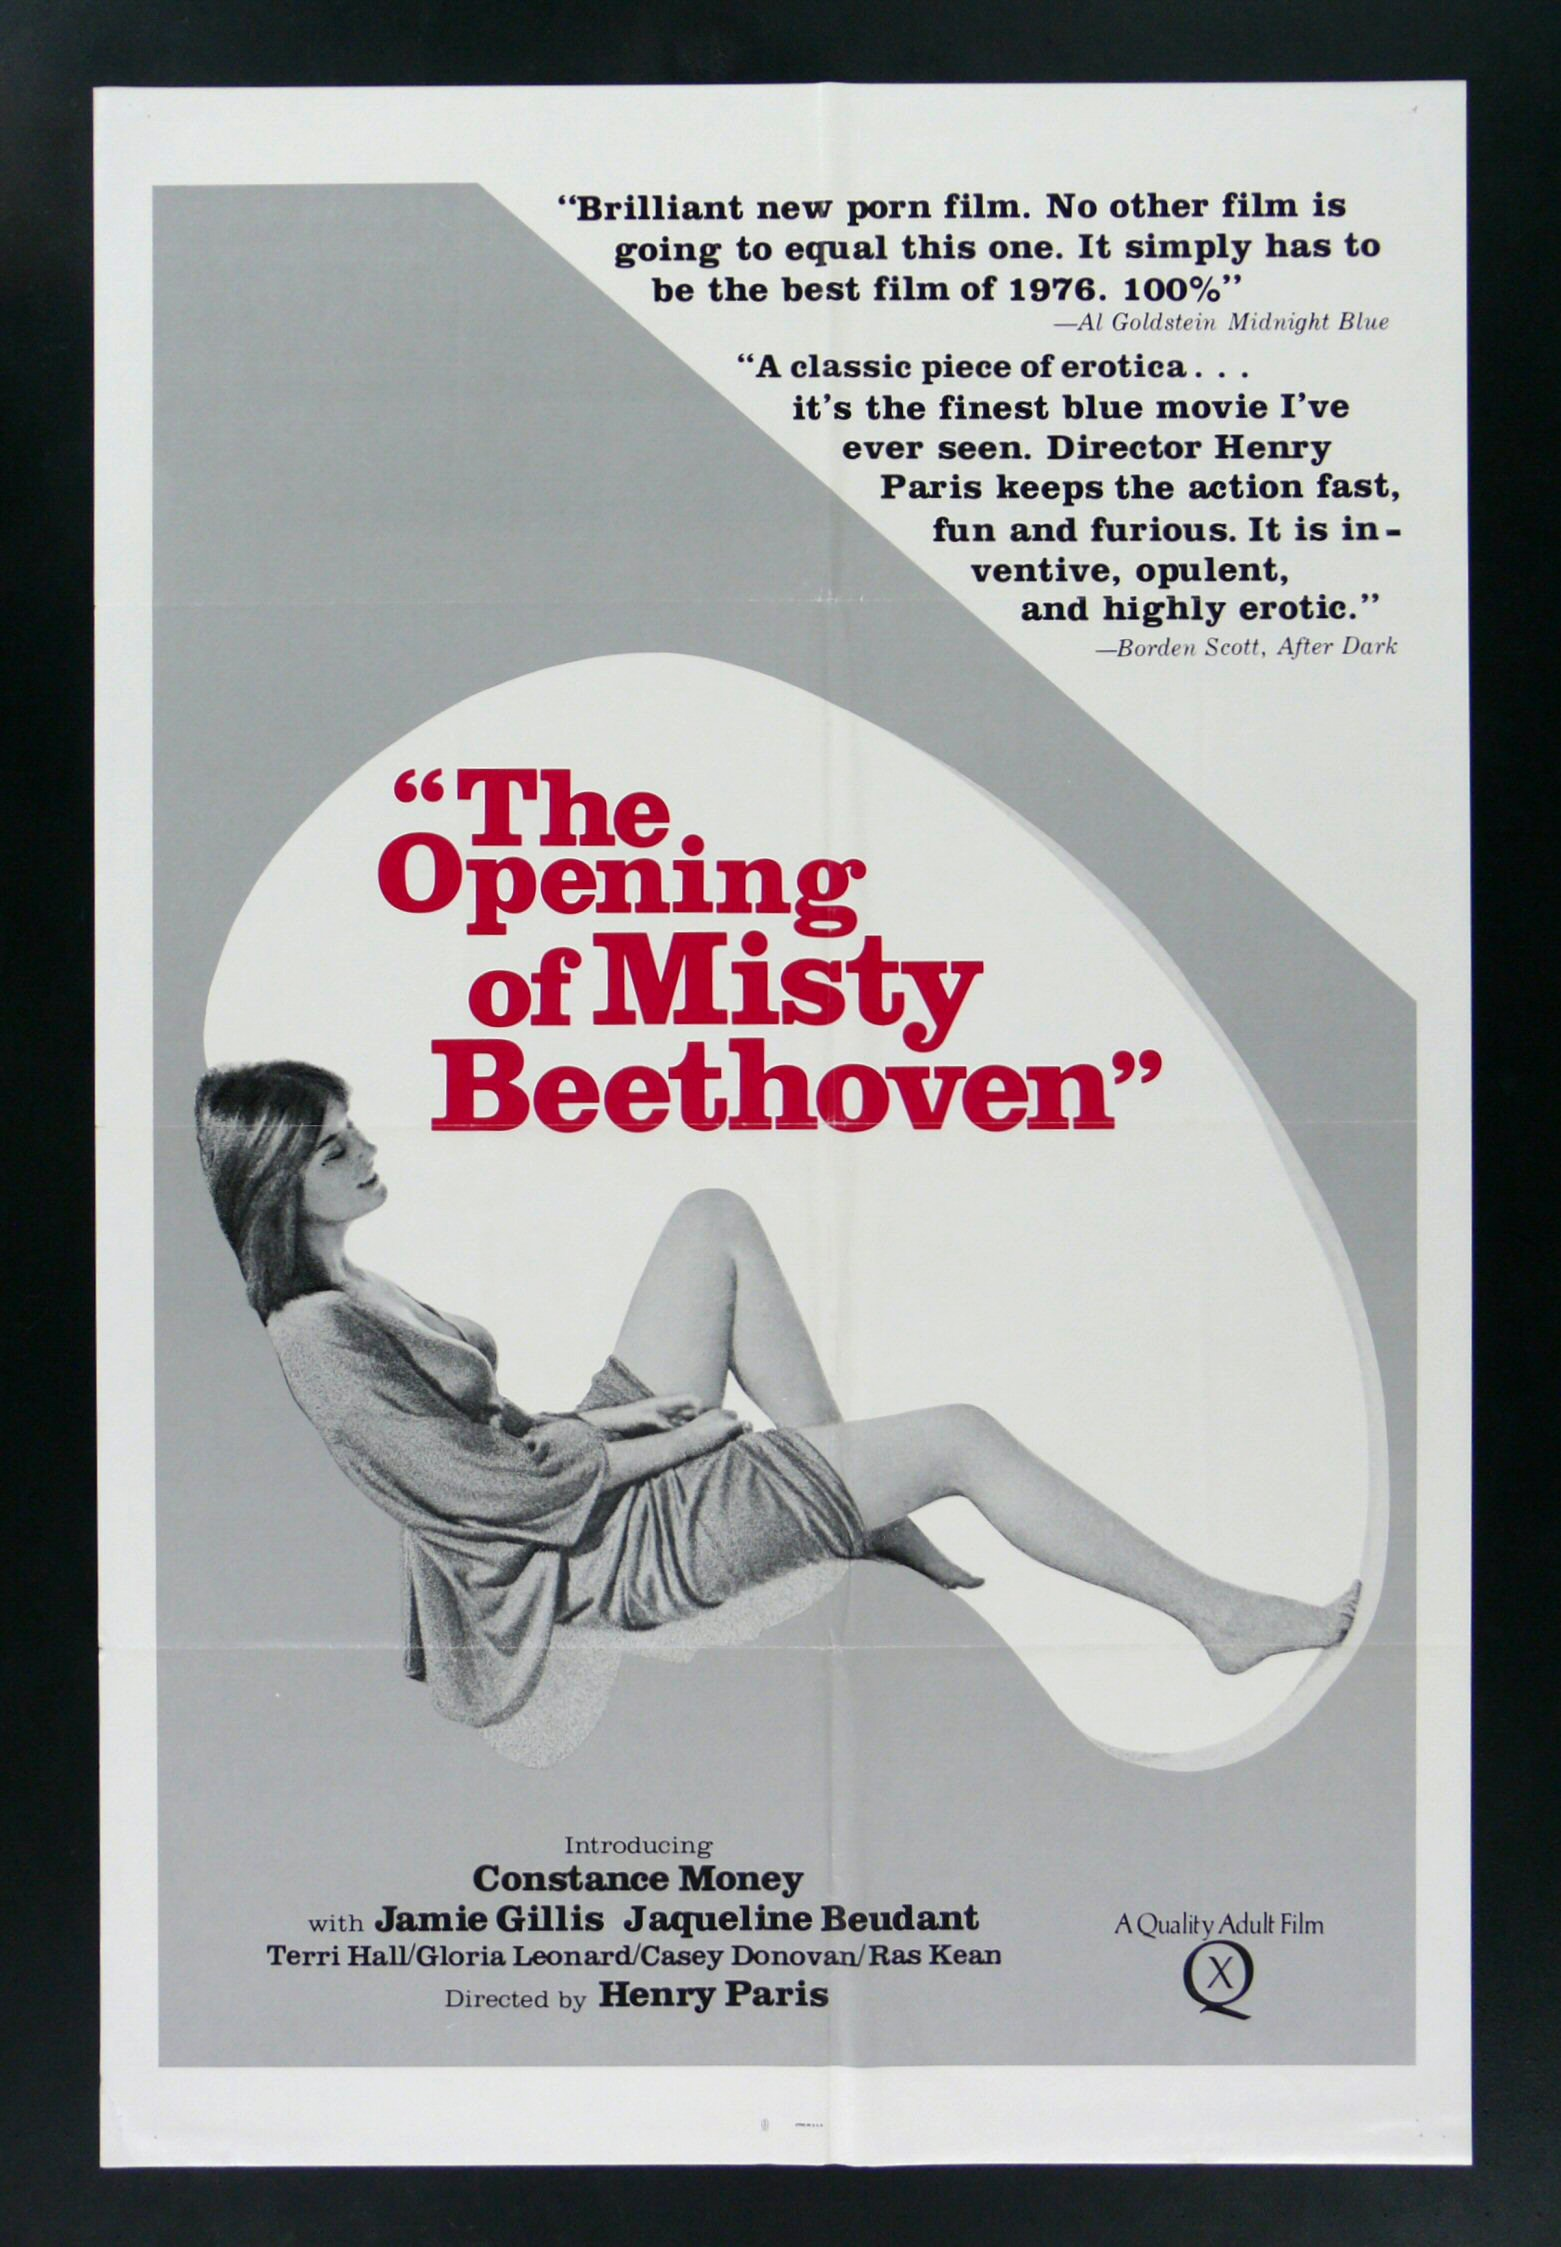 Watch the opening of misty beethoven